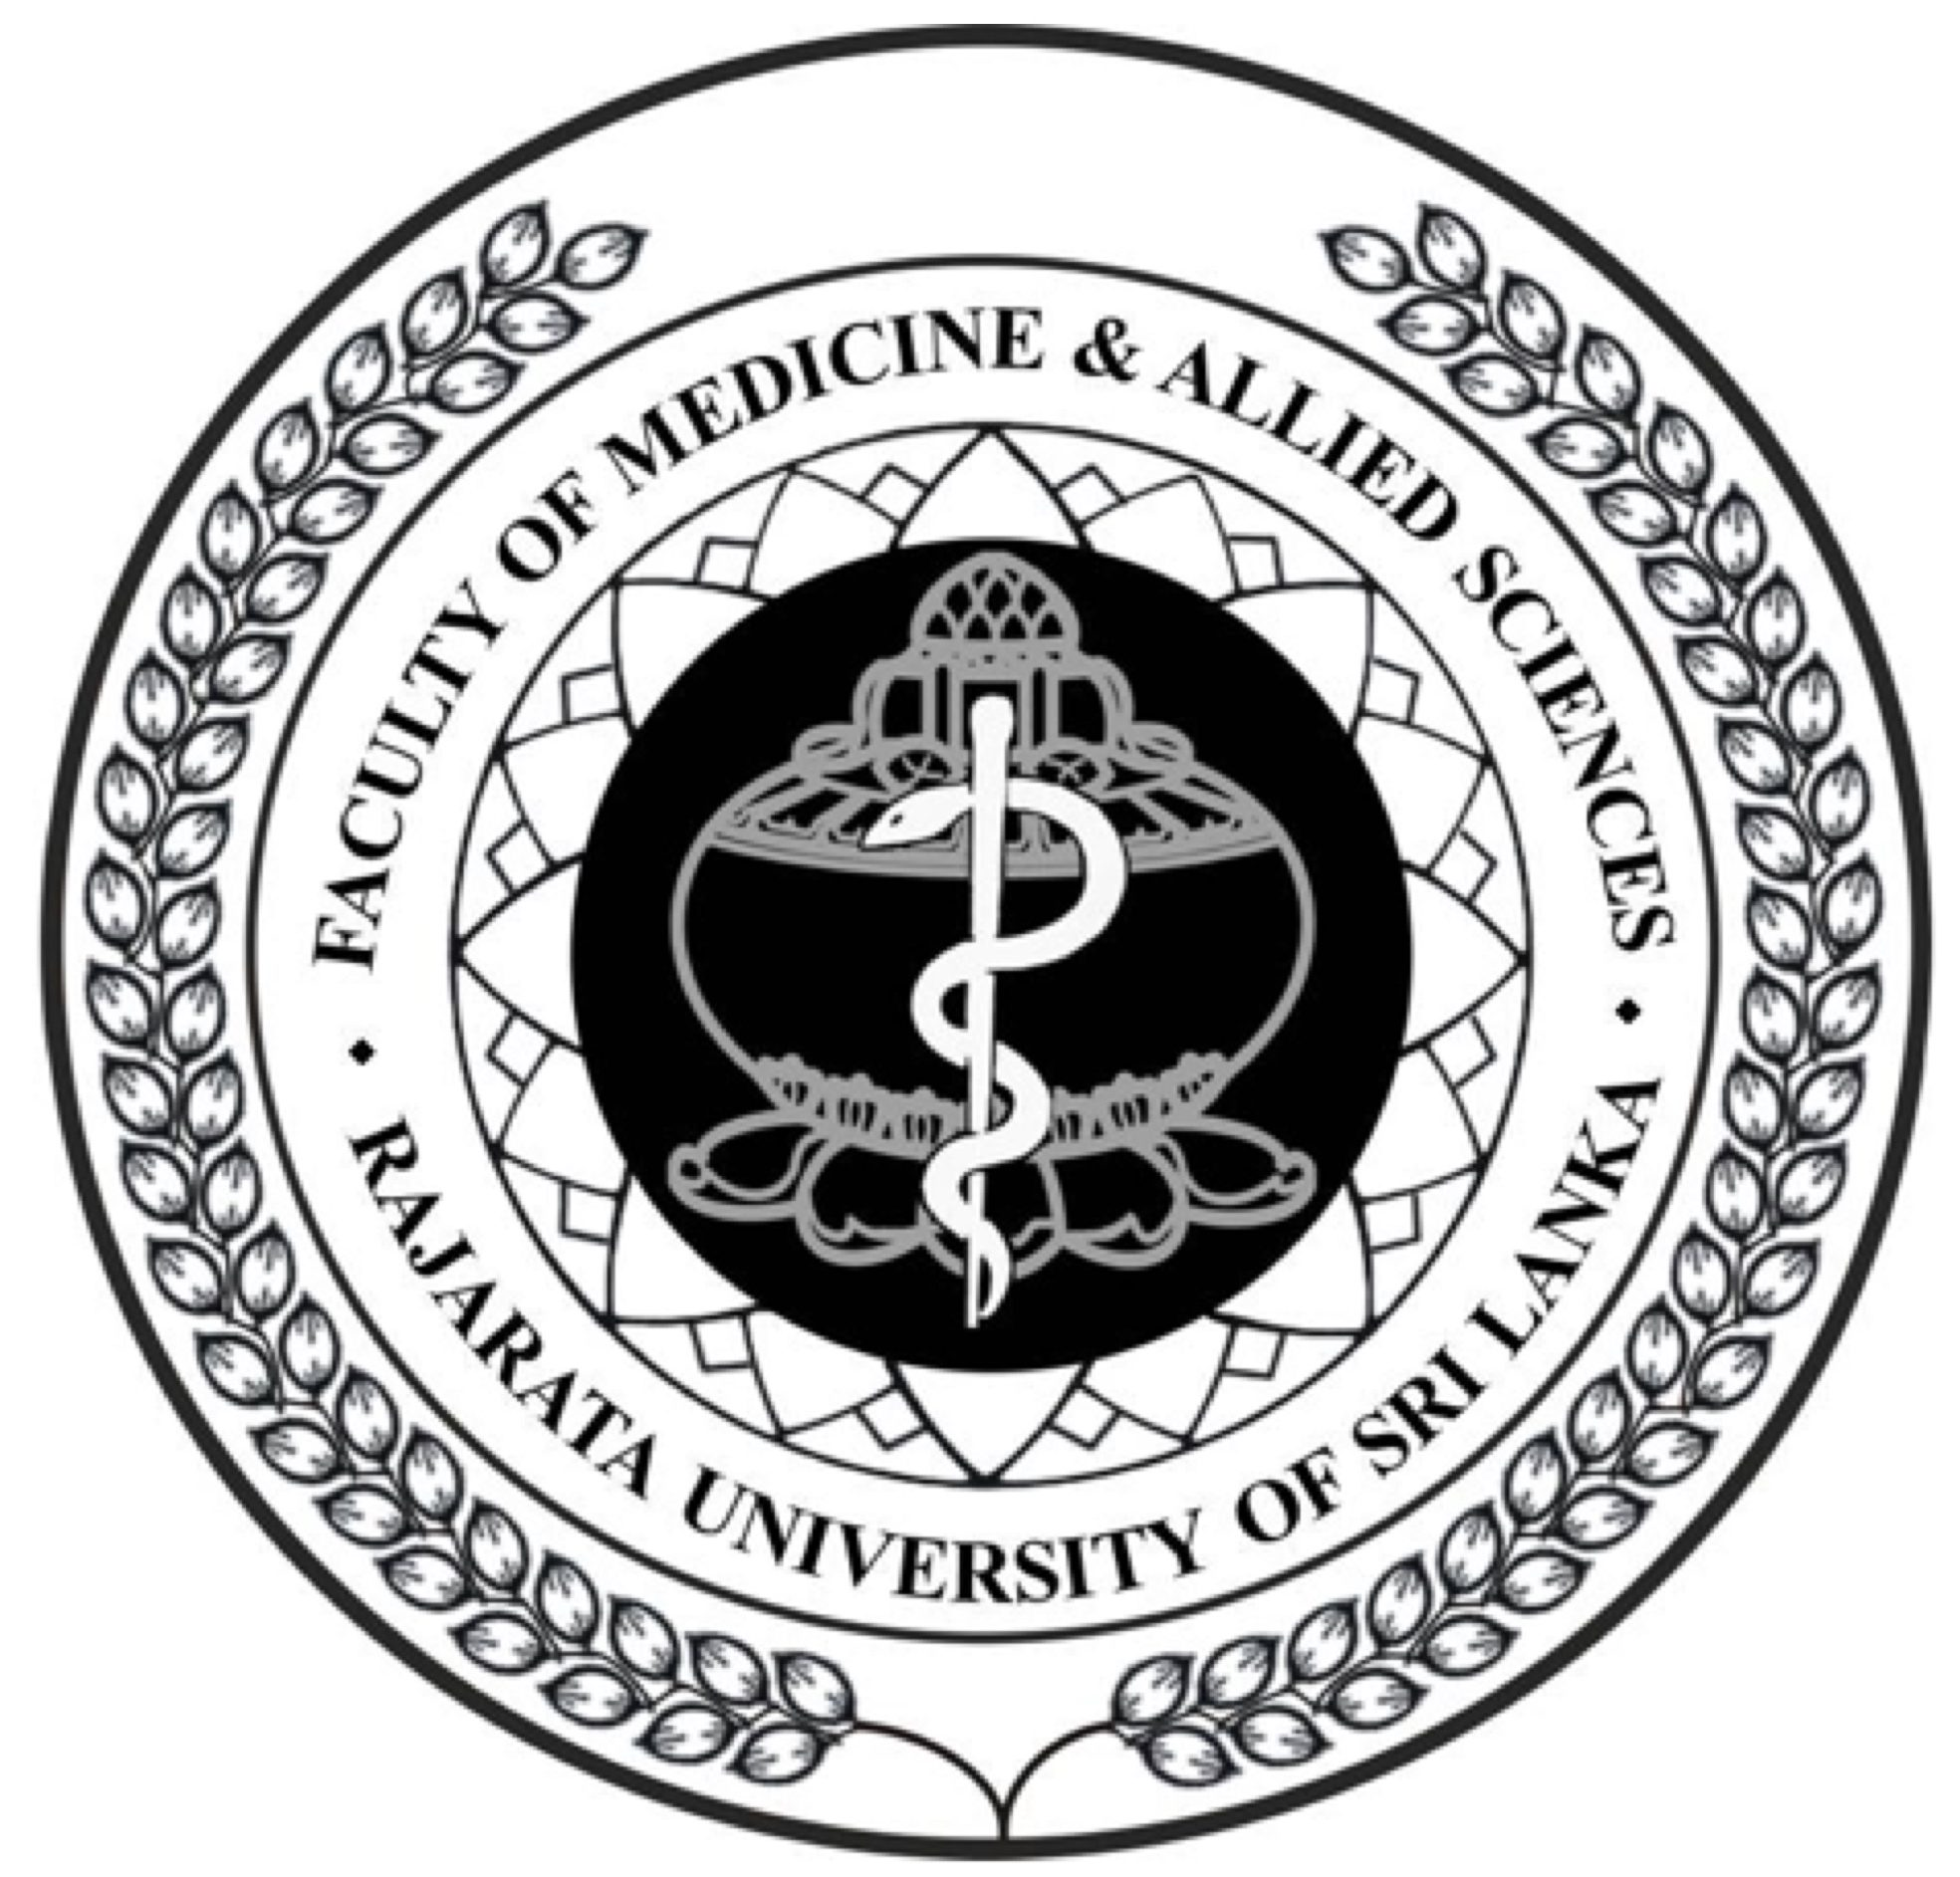 Department of Community Medicine